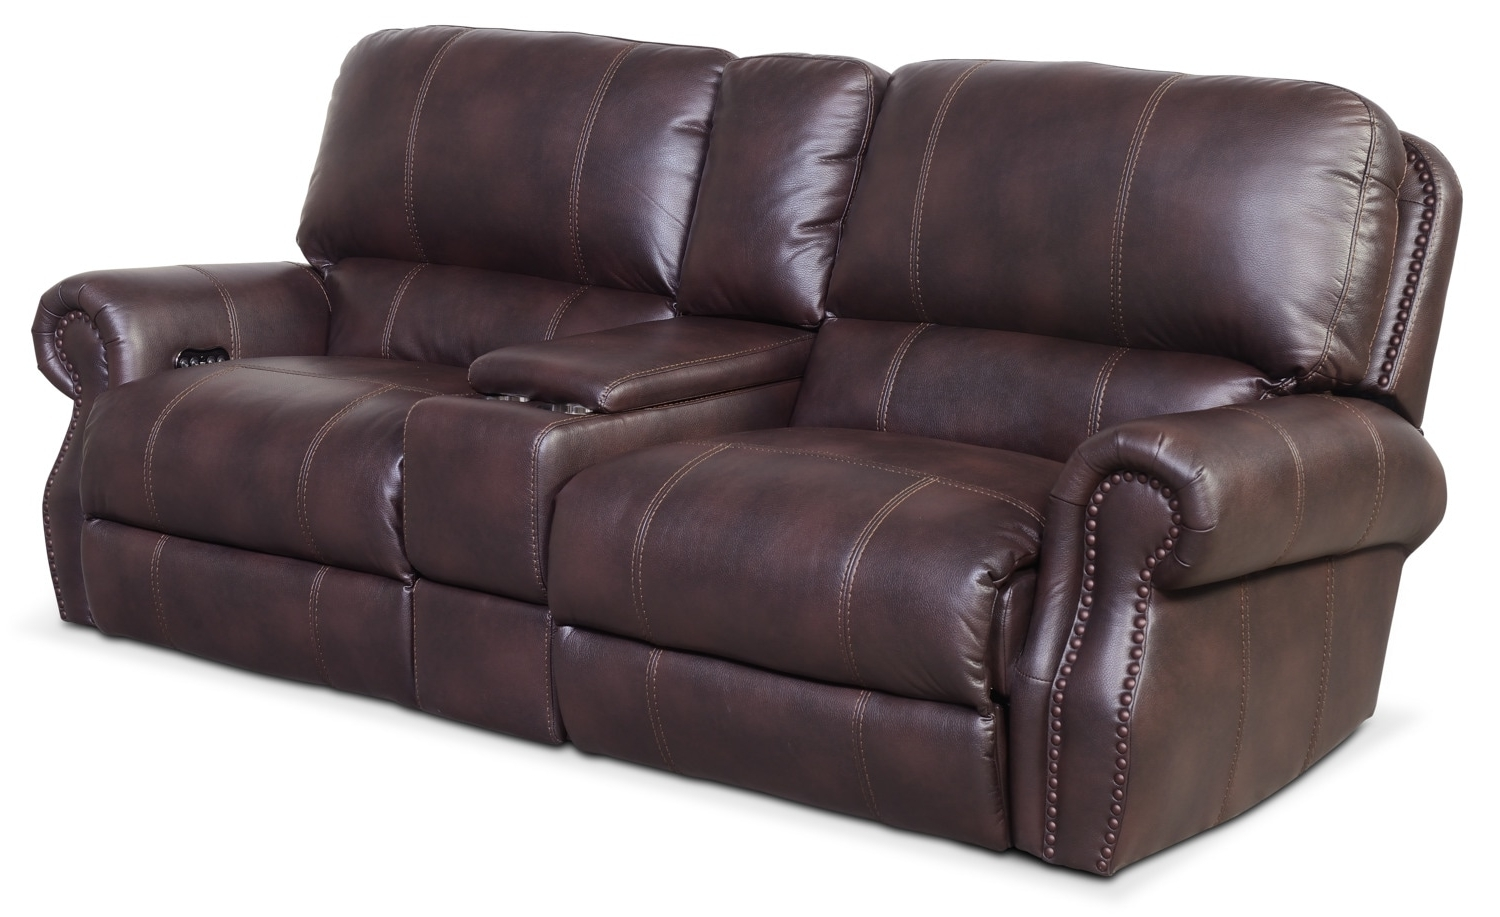 Dartmouth 3 Piece Power Reclining Sofa With Console – Burgundy Inside Current Sofas With Consoles (View 4 of 15)